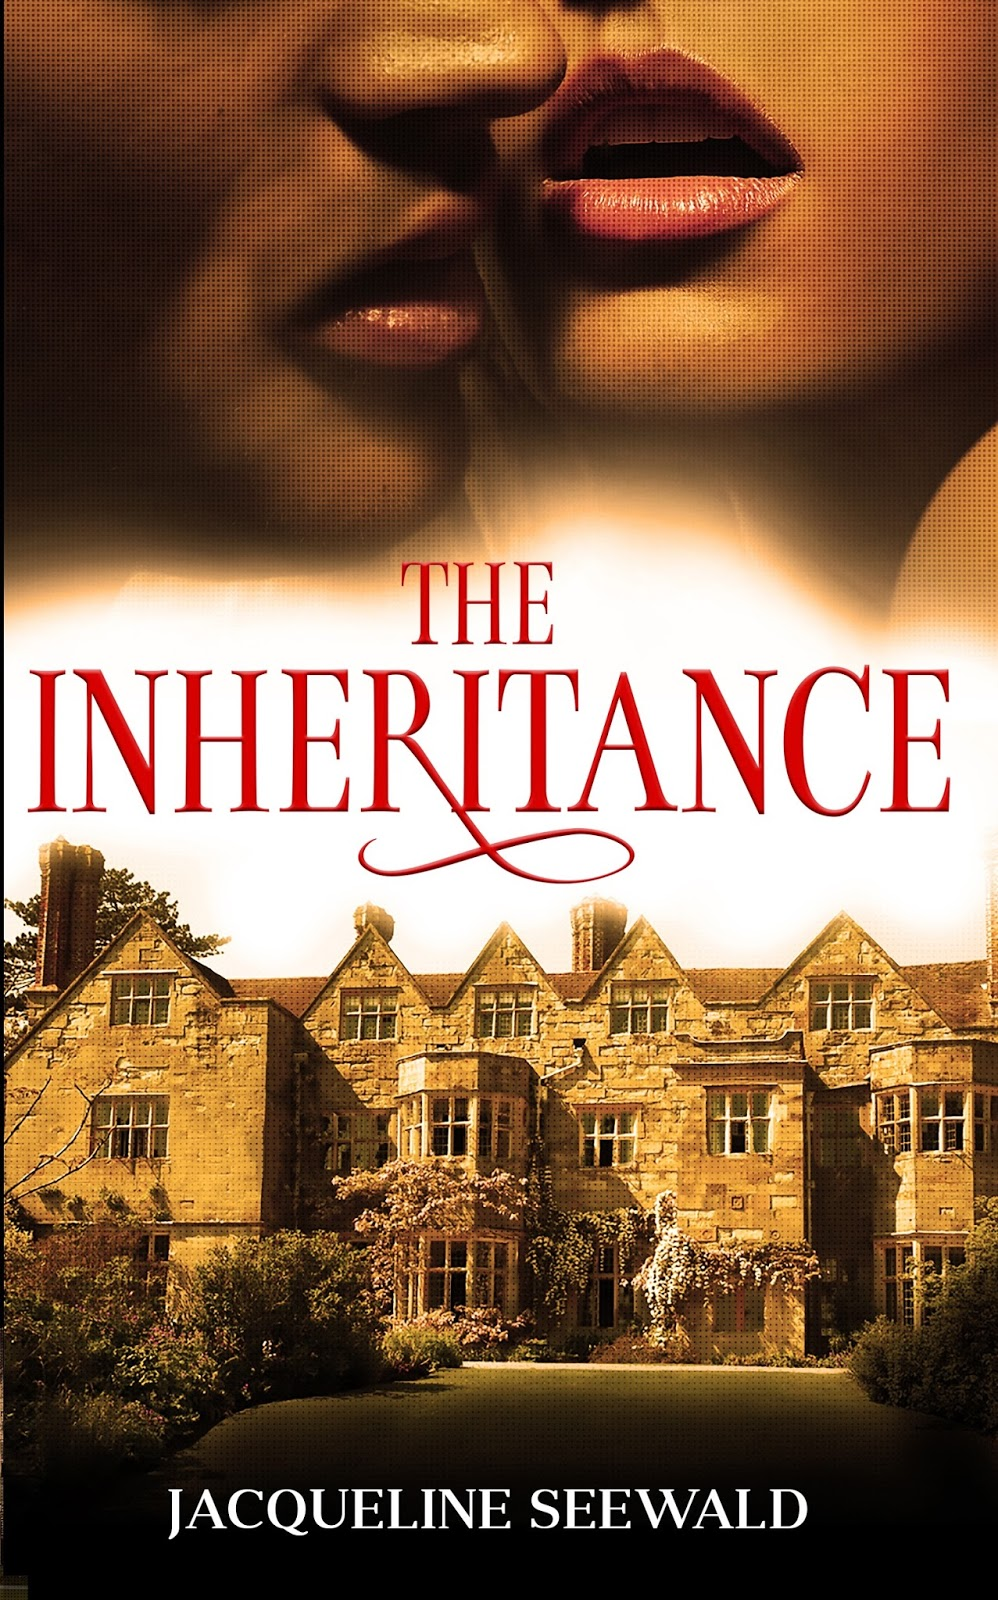 Jacqueline seewald 2016 giveaway winners for the inheritance by jacqueline seewald fandeluxe Images